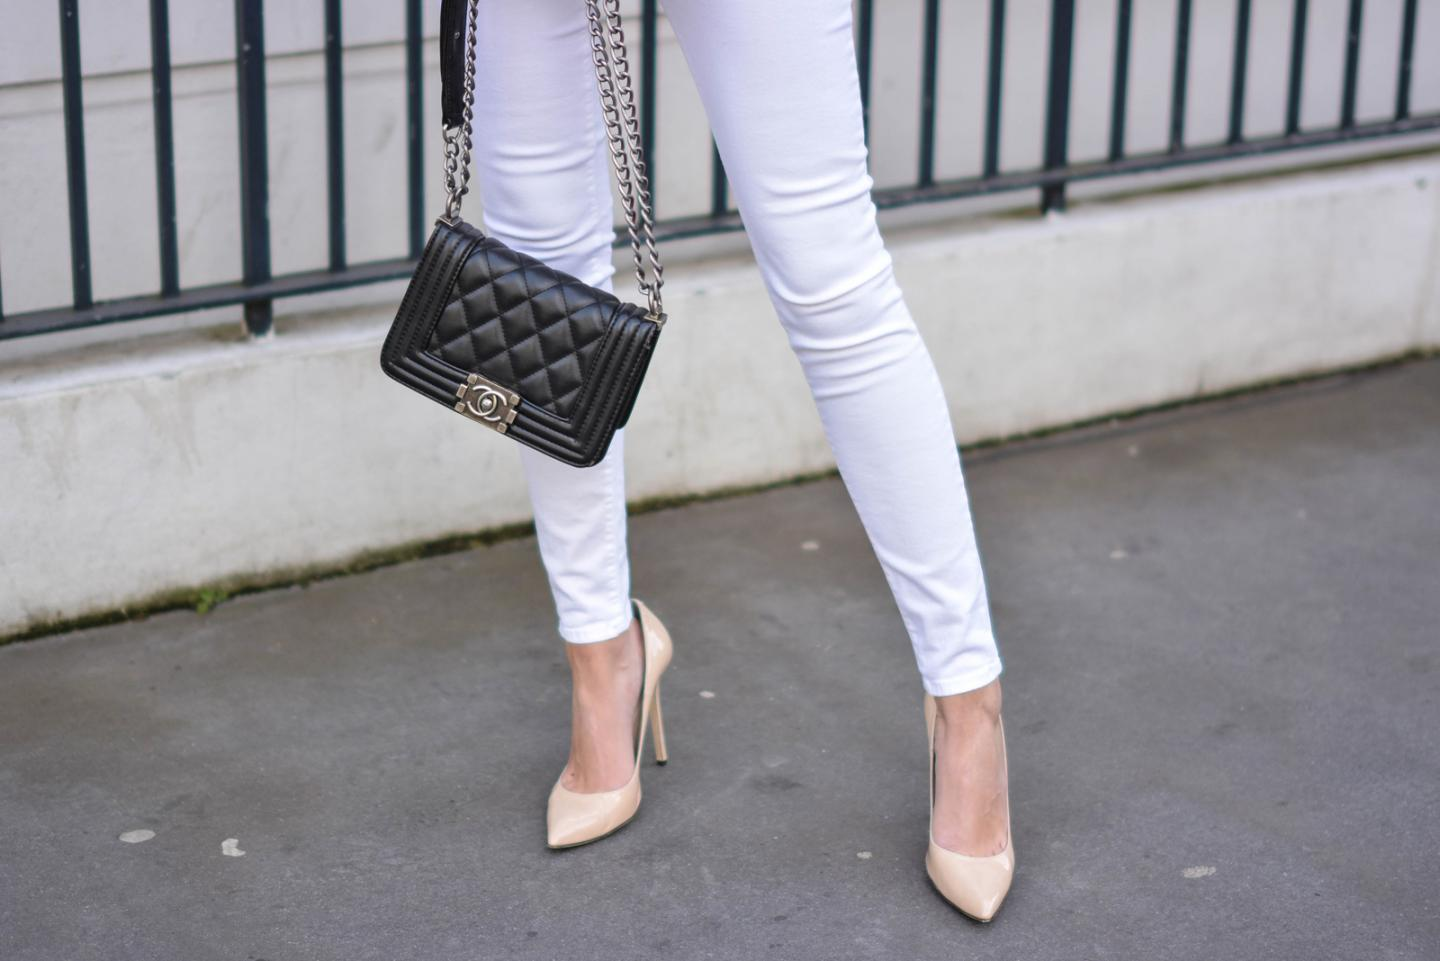 EJSTYLE - Emma Hill, River Island white skinny jeans, black Chanel Boy bag, Daniel footwear nude court shoes